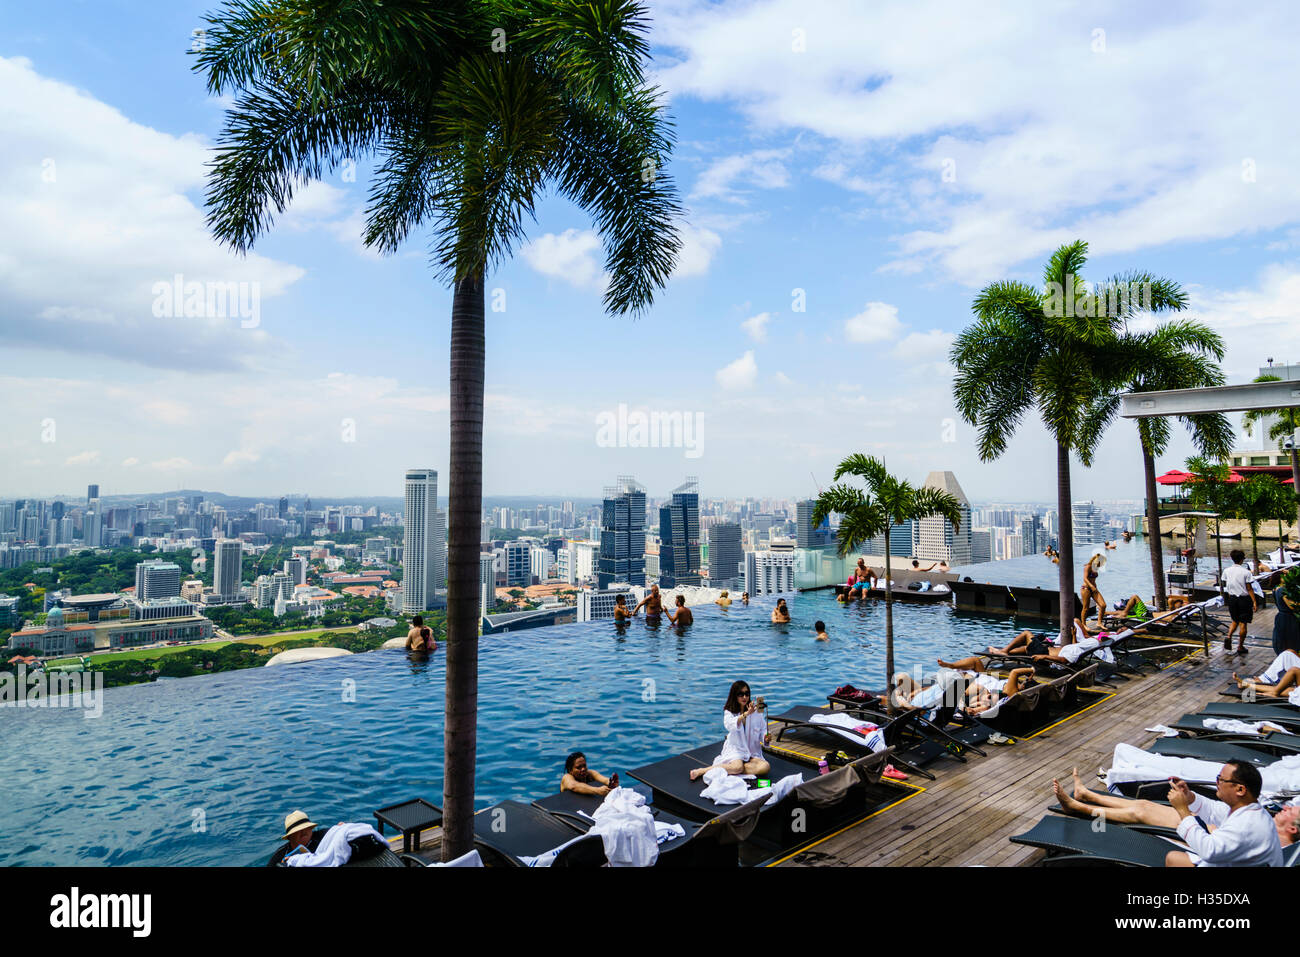 Infinity pool on the roof of the Marina Bay Sands Hotel with spectacular views over the Singapore skyline, Singapore - Stock Image